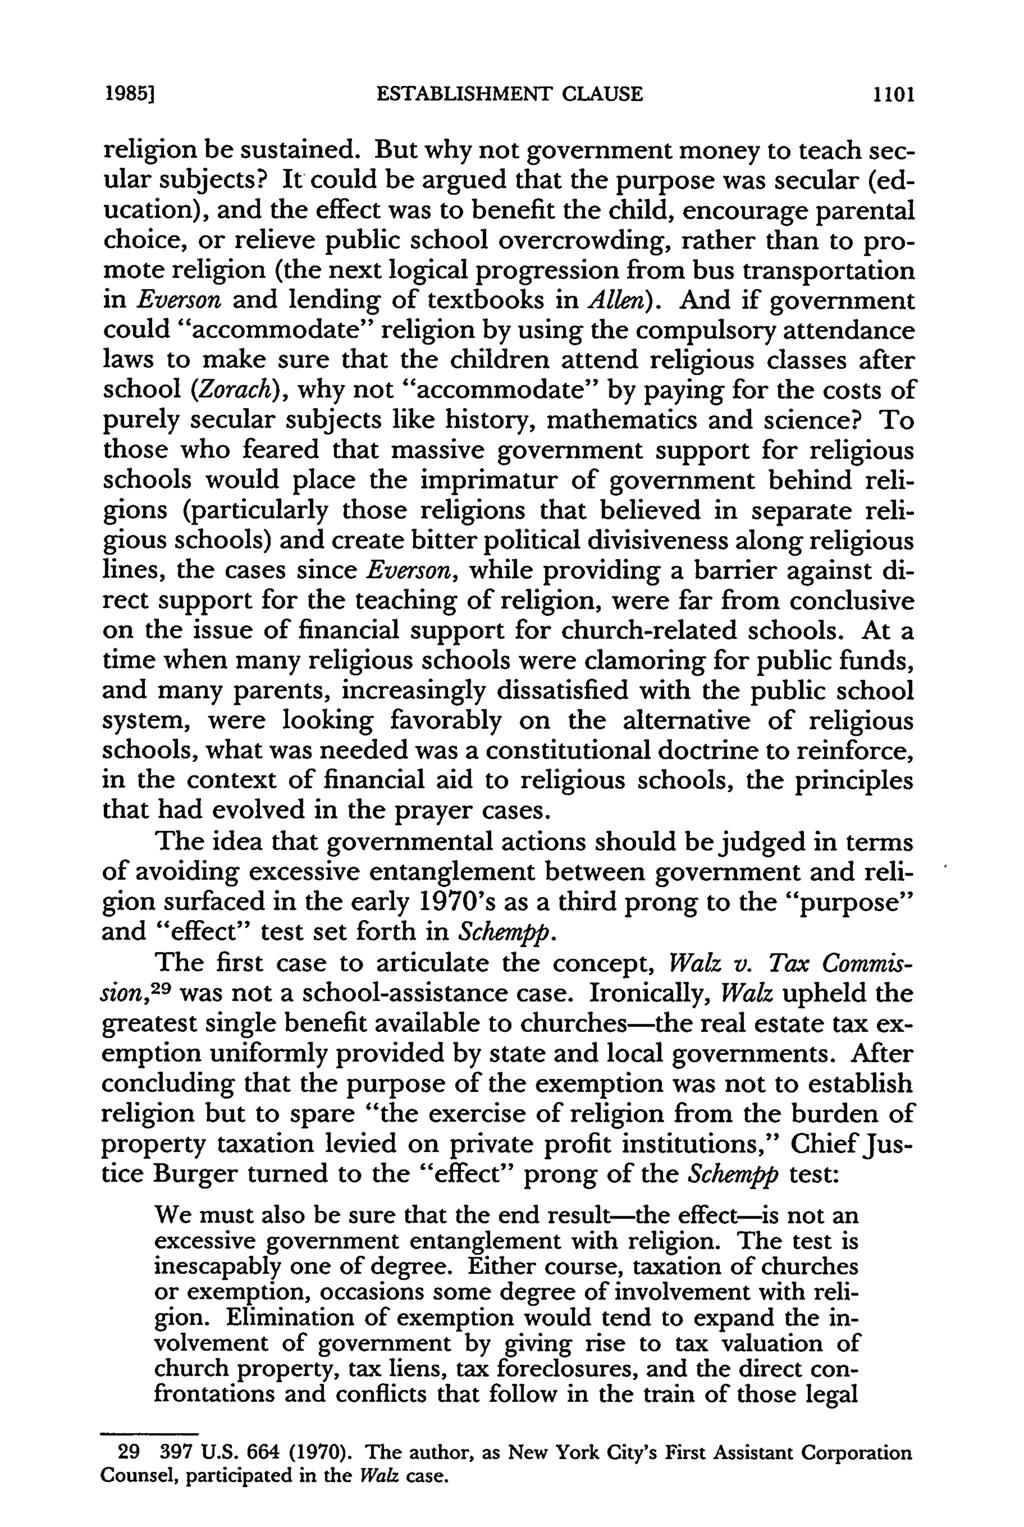 19851 ESTABLISHMENT CLAUSE religion be sustained. But why not government money to teach secular subjects?